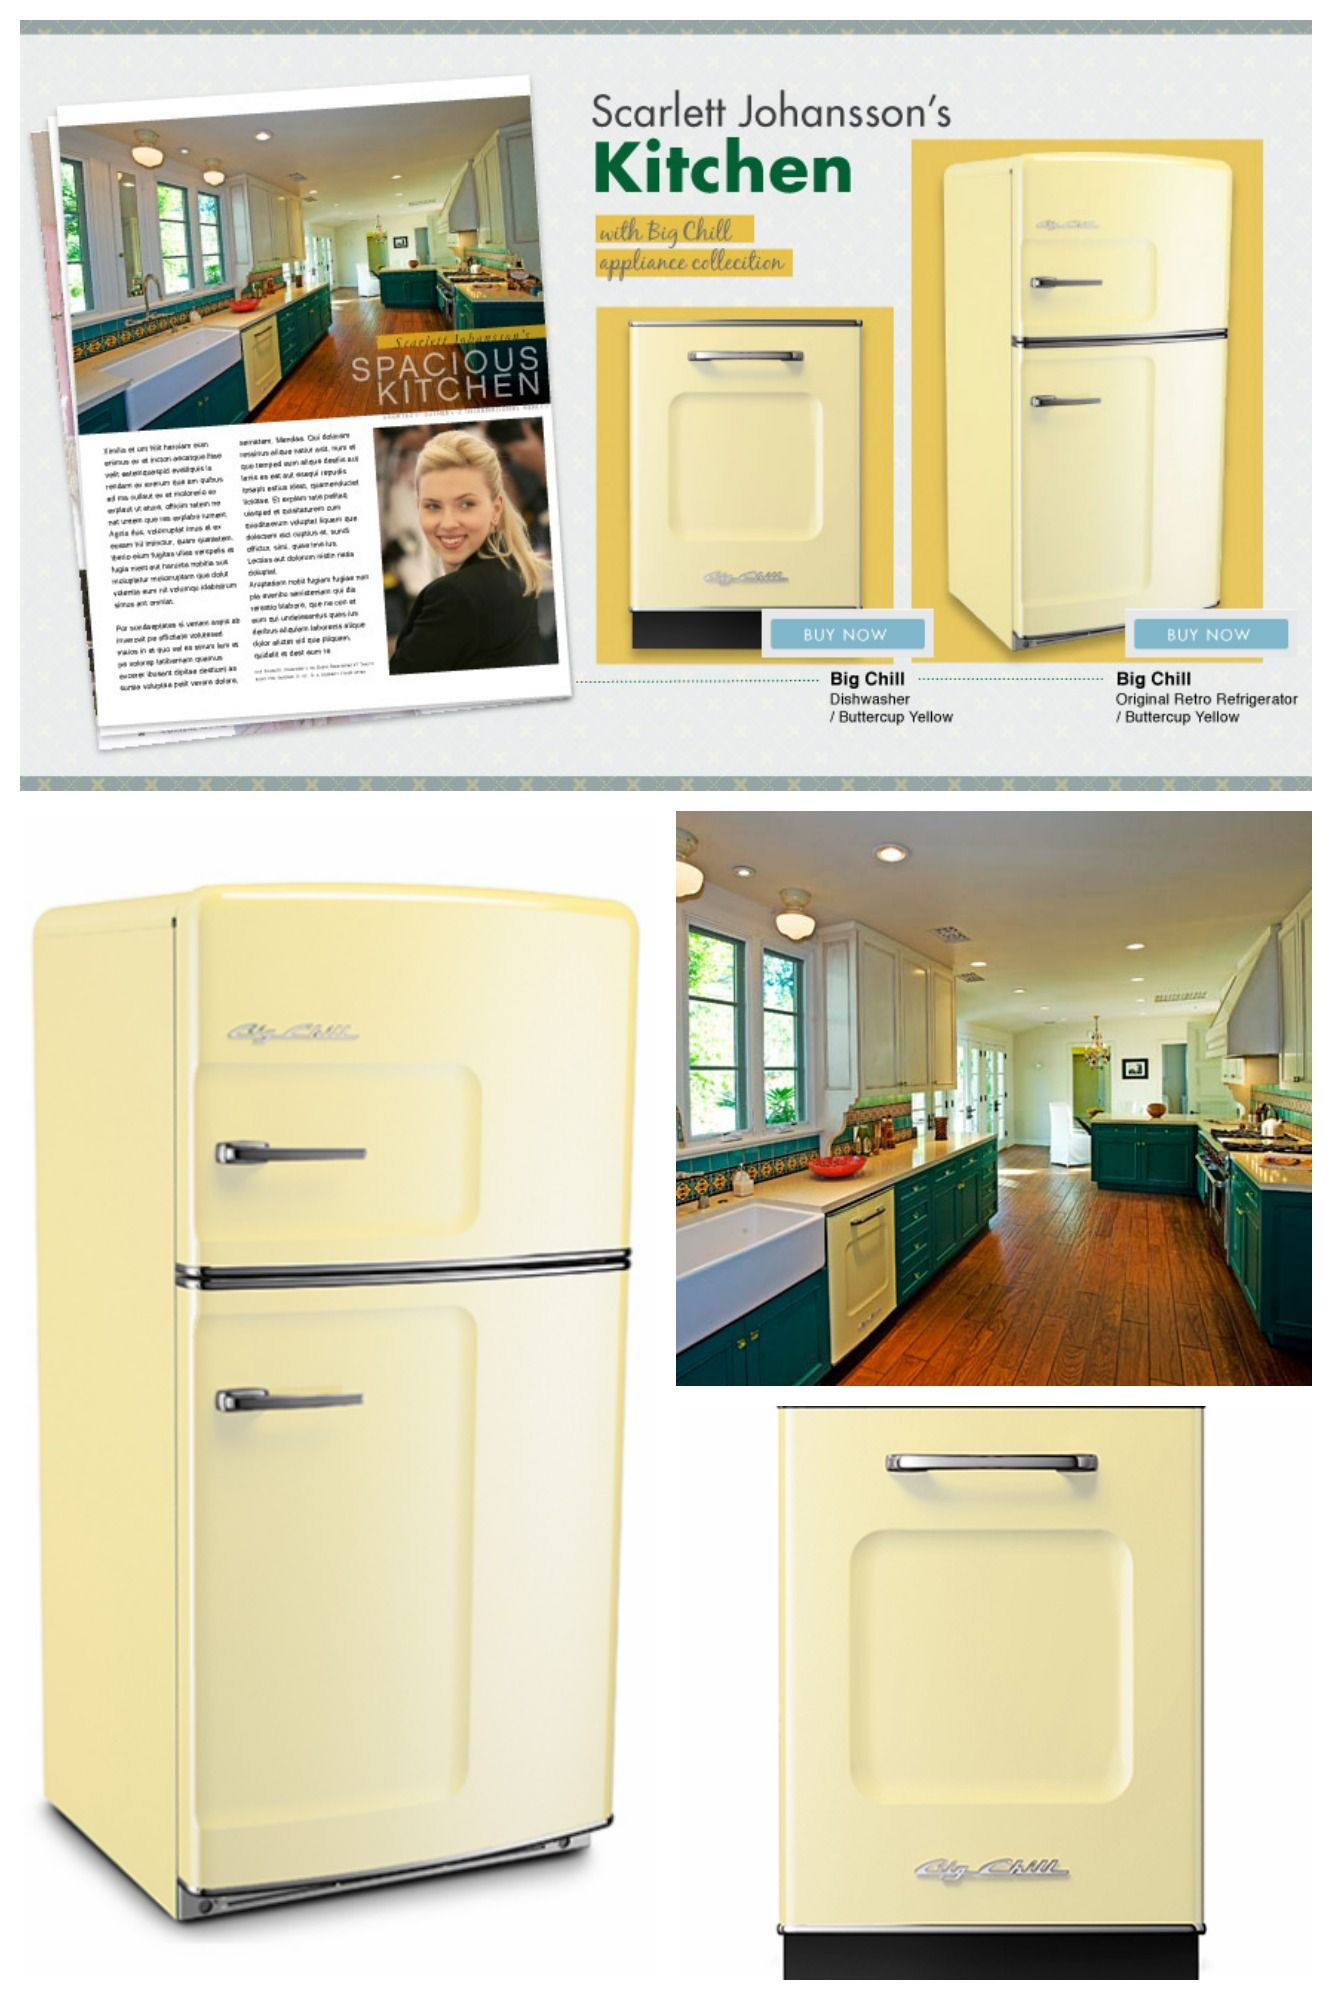 Celebrity kitchens inspired by big chill scarlett johansson goes for the beautiful buttercup yellow range how can you get the celebrity kitchen look